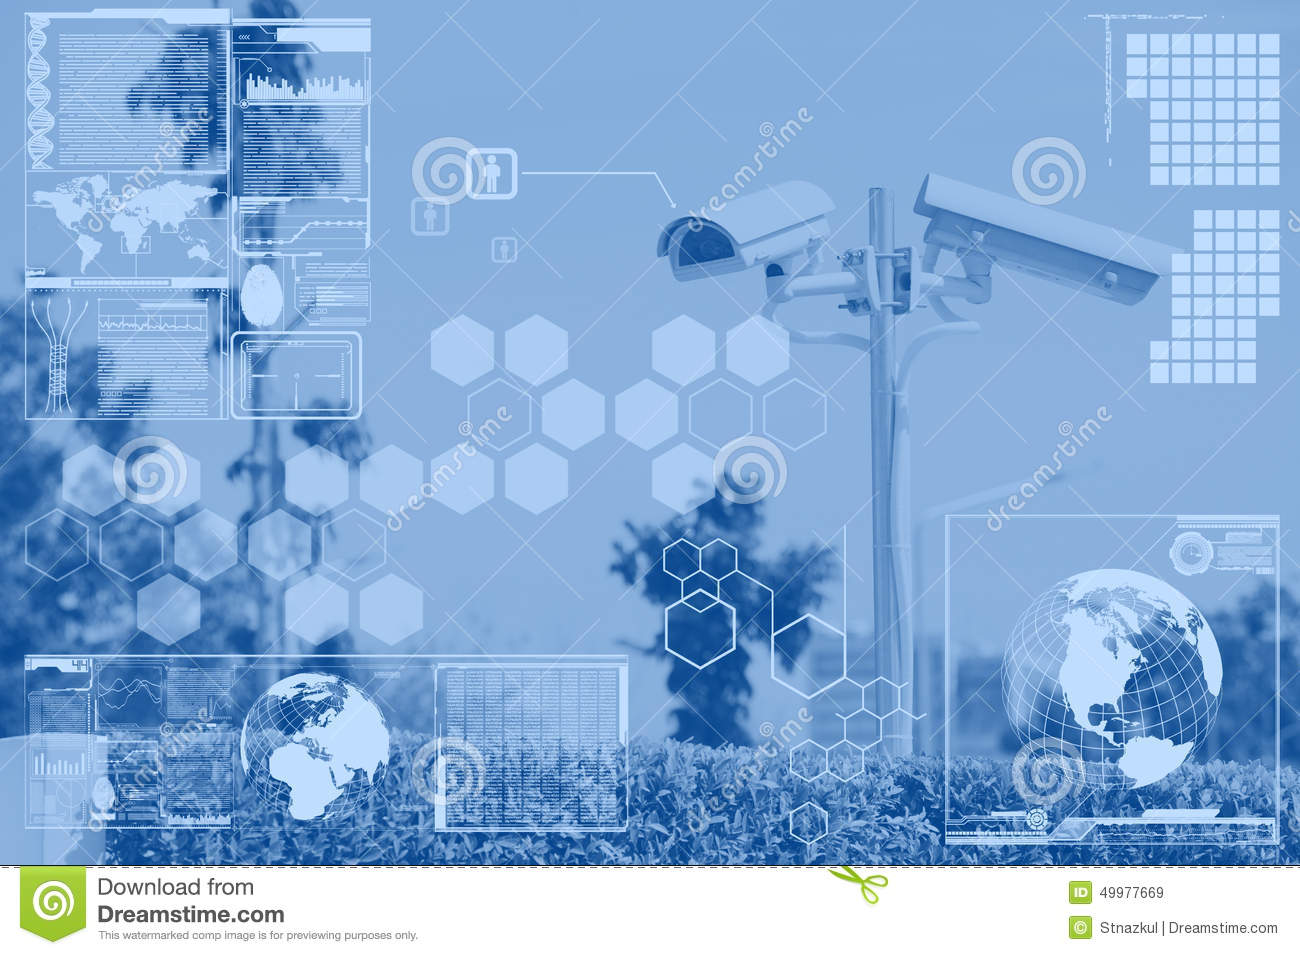 CCTV or surveillance with technology screen layer